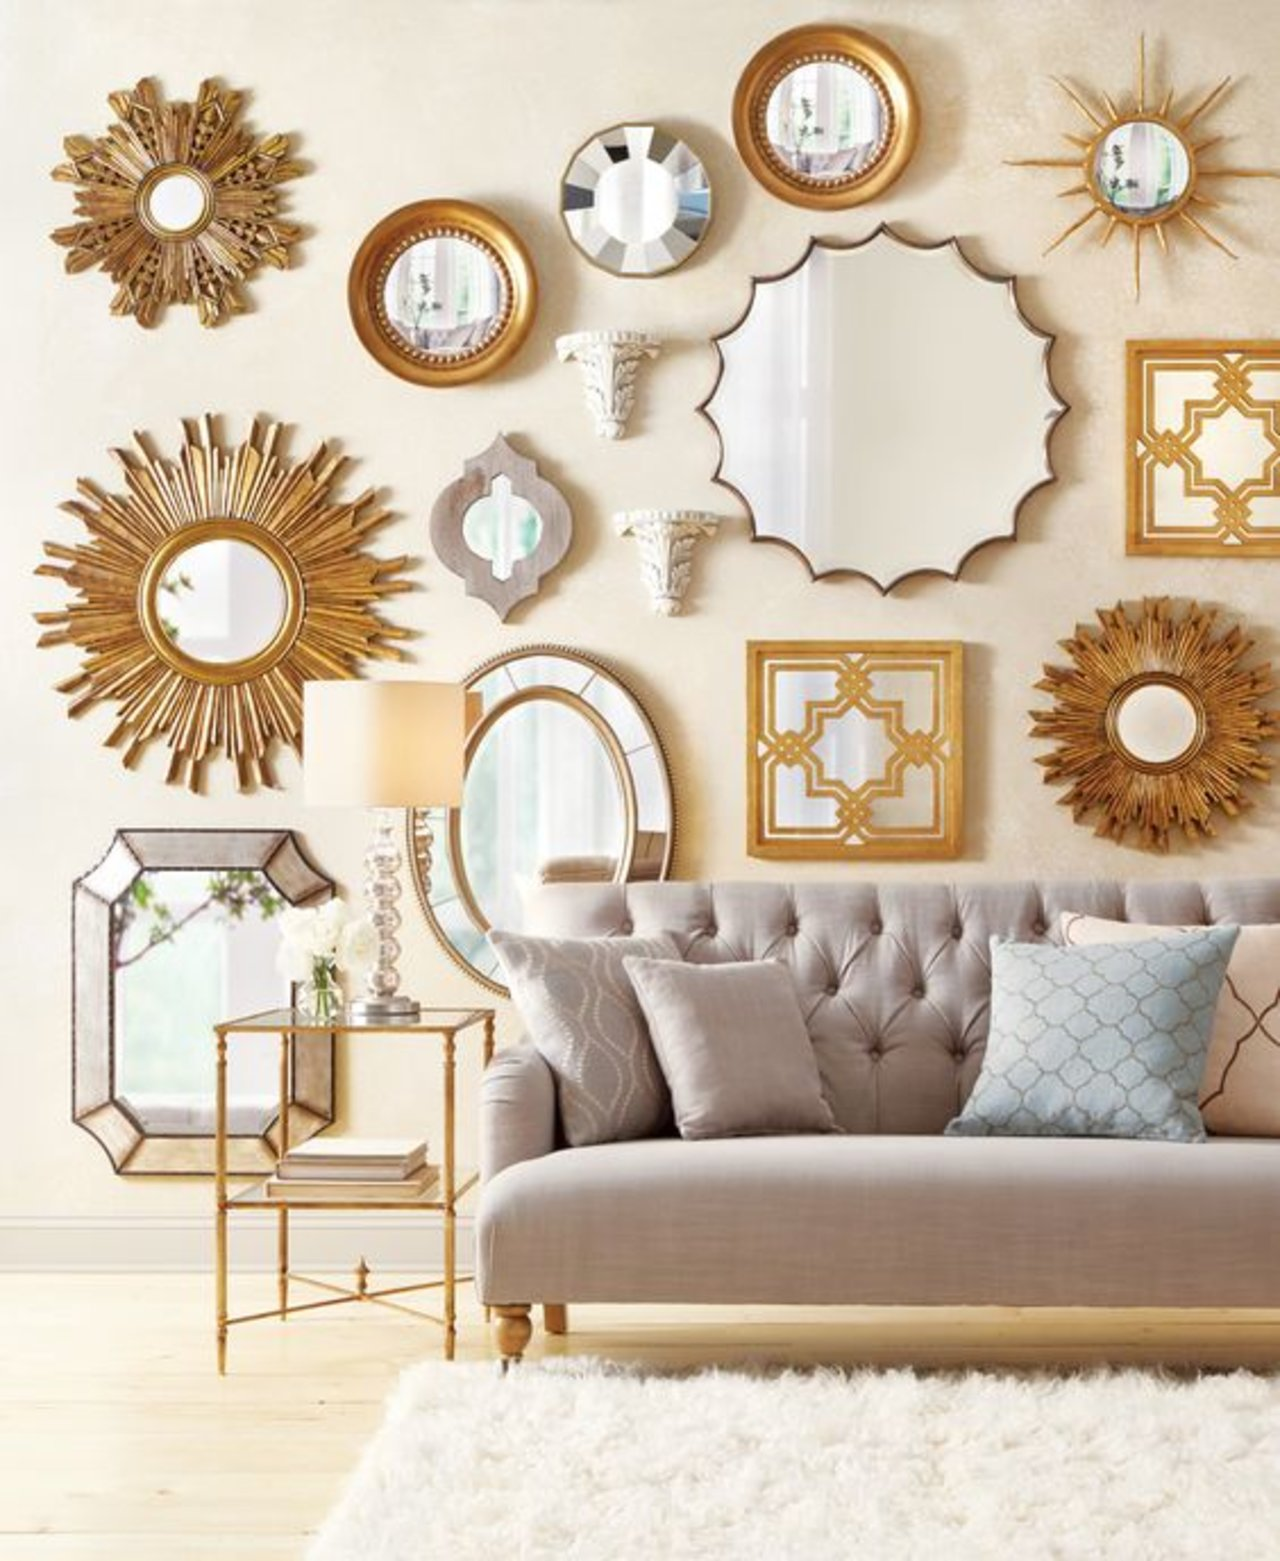 Wall decor 10 best mirror decorating ideas for your room maximize your living room 39 s style for Decorative ideas for living room walls